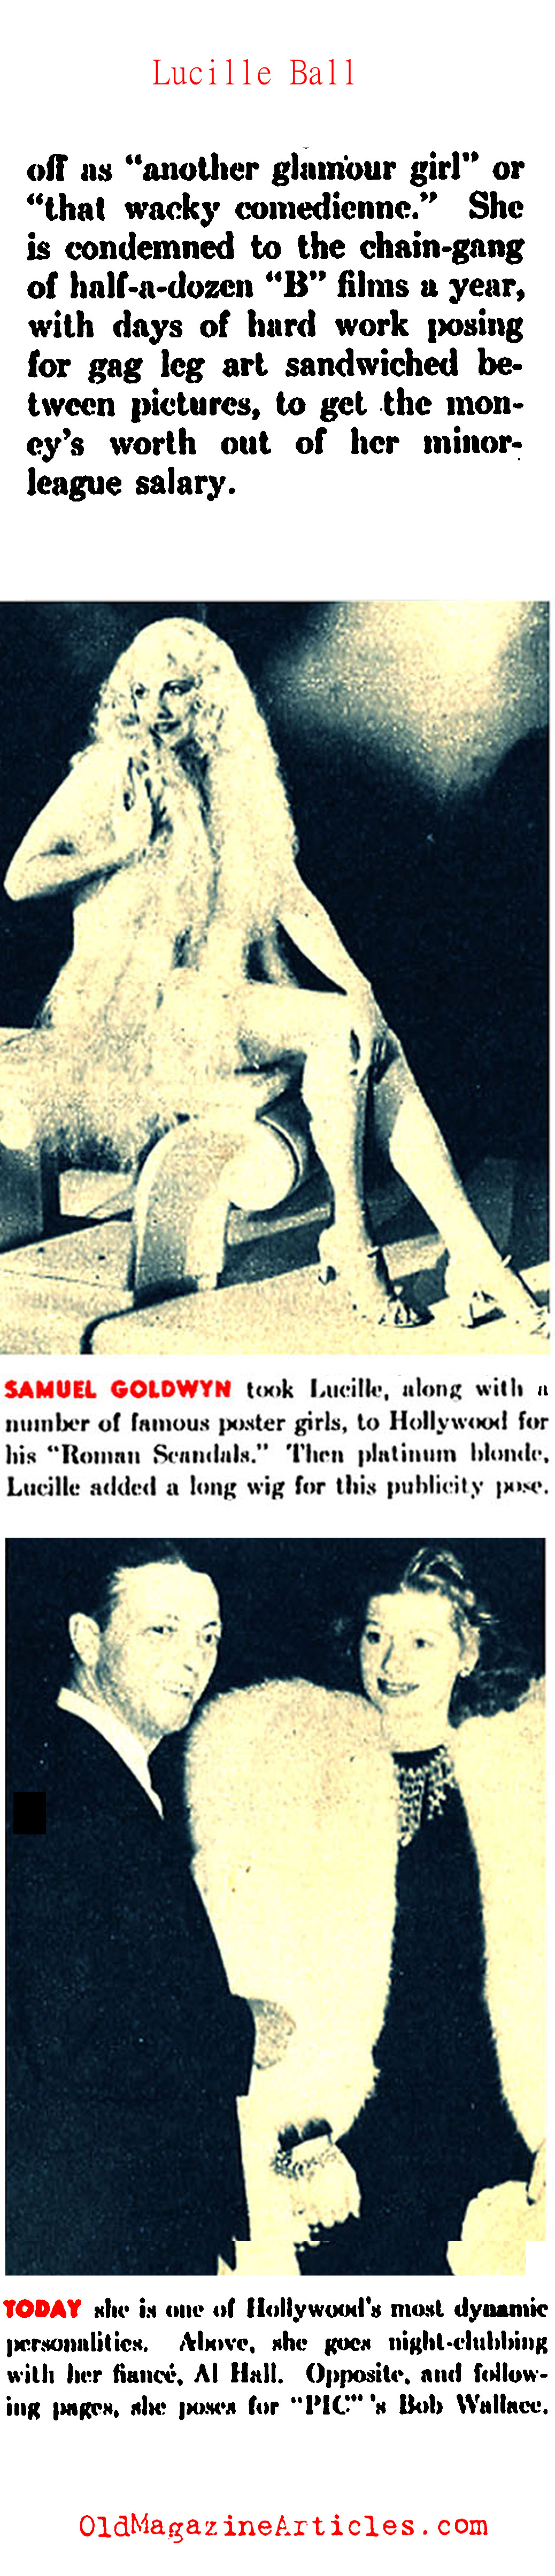 Lucille Ball Gets Noticed (Pic Magazine, 1940)